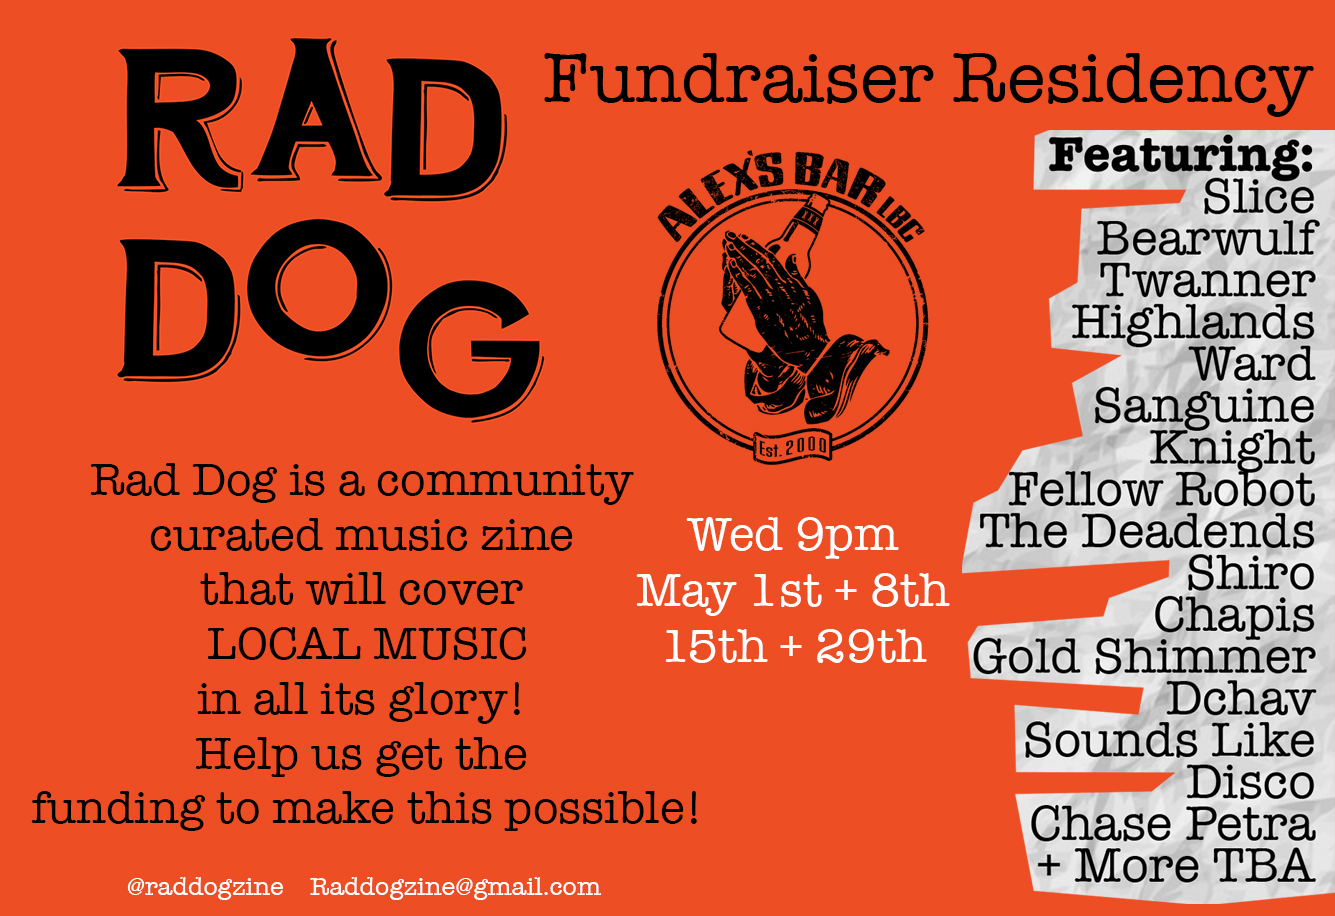 Rad Dog Residency runs all of may and seeks to raise funds for printing costs. Rad Dog is a community curated magazine focused on the local music scene in LB, LA, and OC areas.